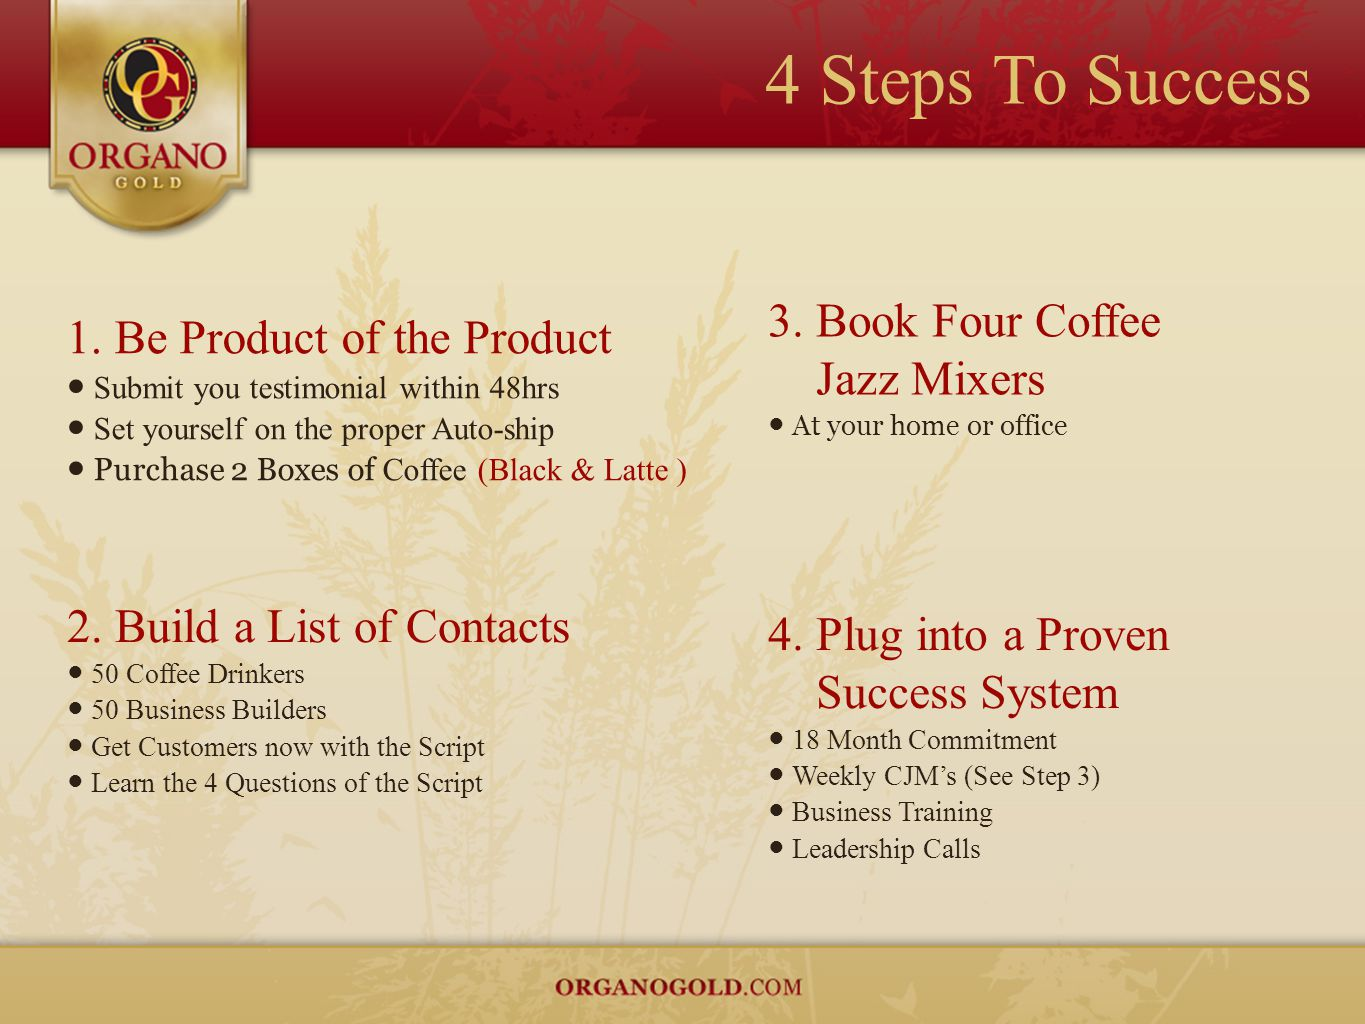 4 Steps To Success Book Four Coffee Jazz Mixers